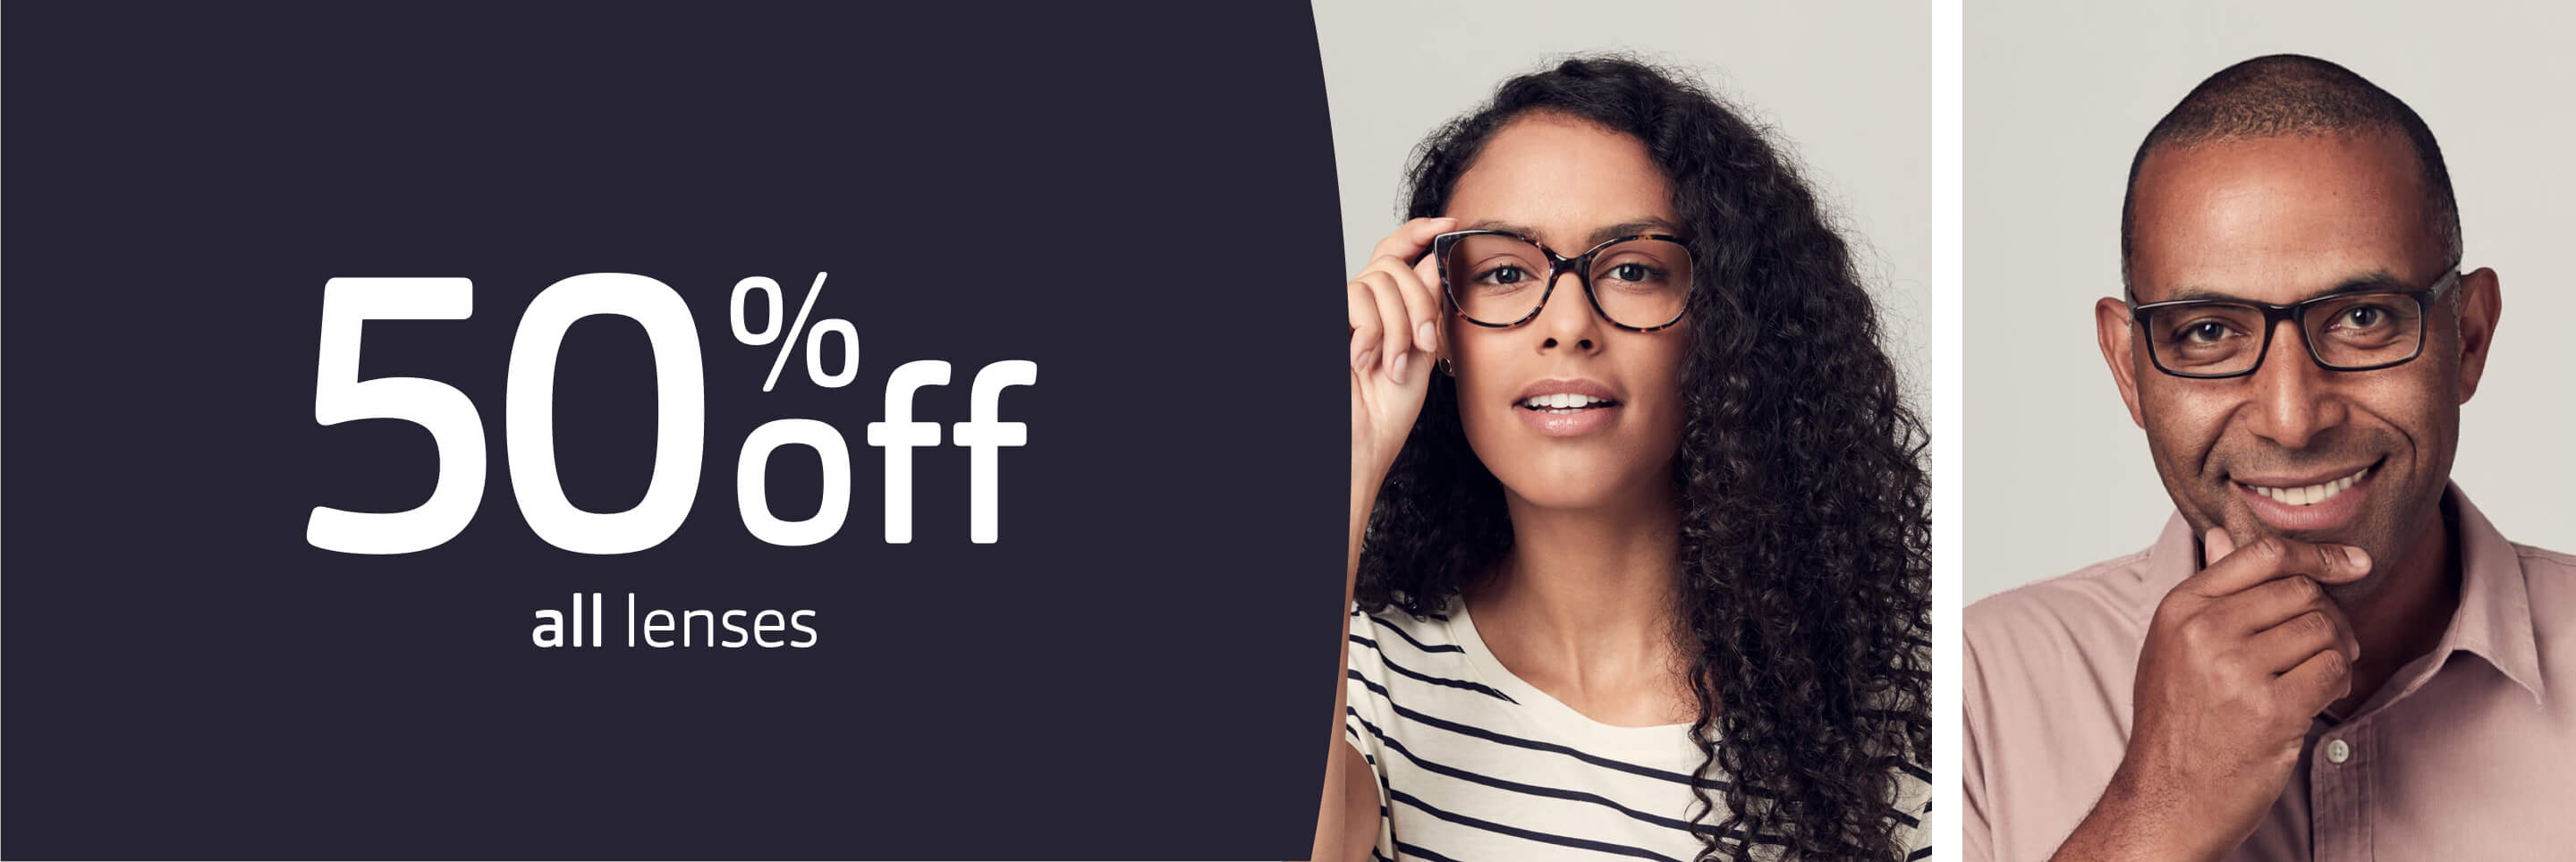 Banner with 50% off all lenses in text and head and shoulders images of a man and a woman wearing glasses.